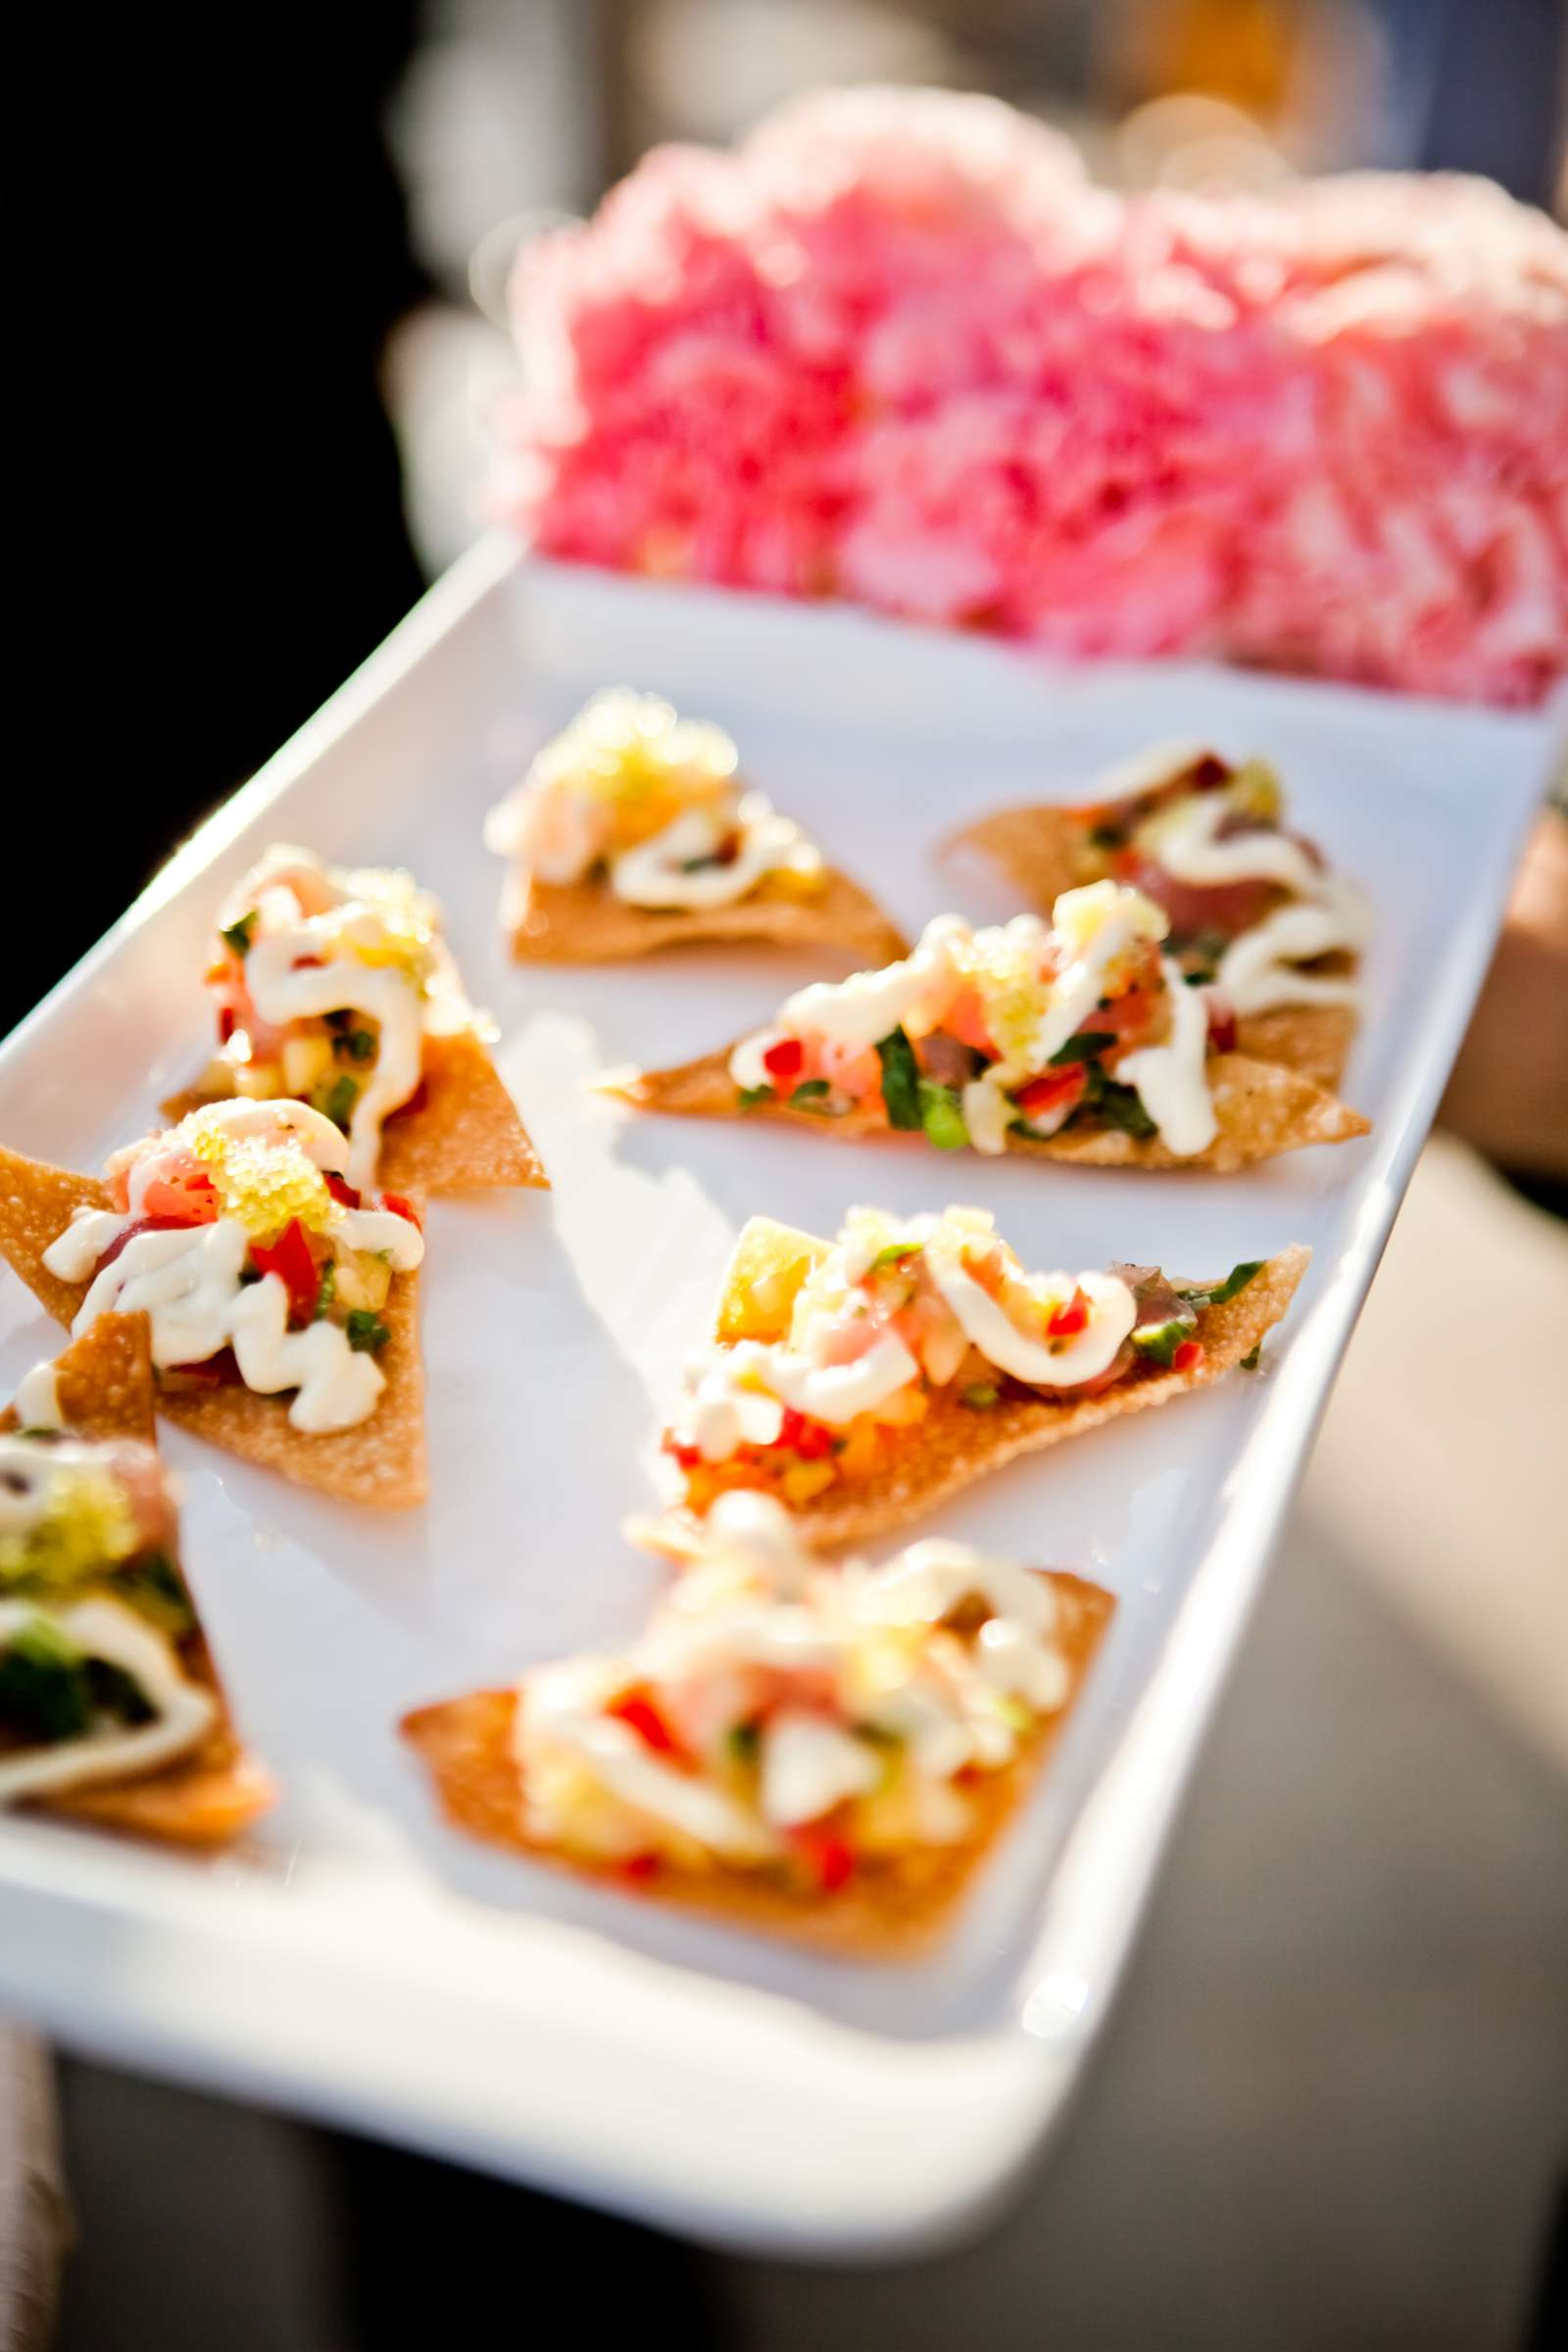 Food at Ultimate Skybox Wedding, Chelsea and Frank Wedding Photo #56 by True Photography